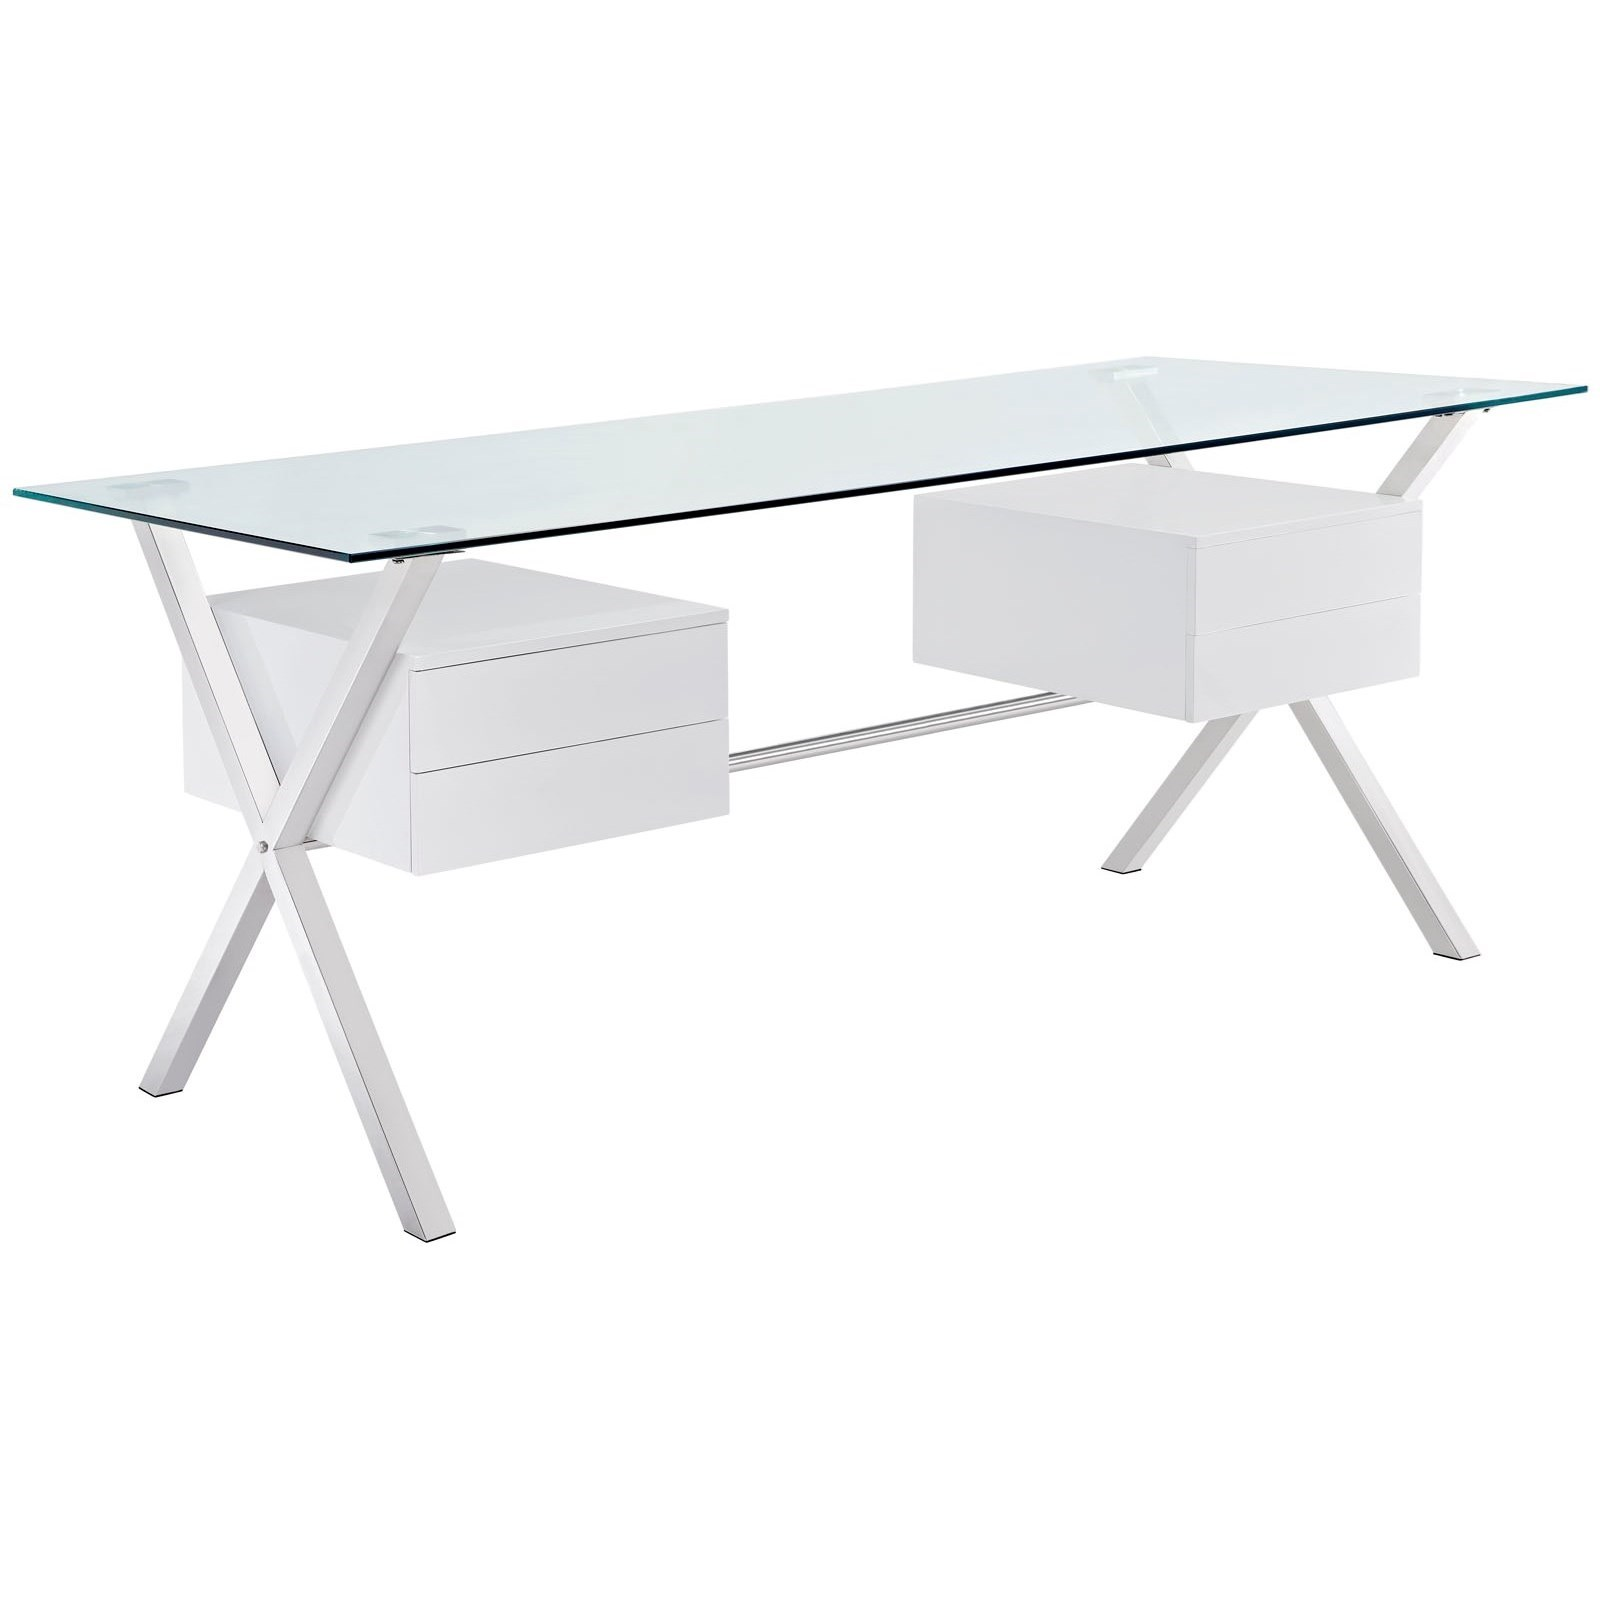 Abeyance Glass Top Office Desk by Modway at Value City Furniture